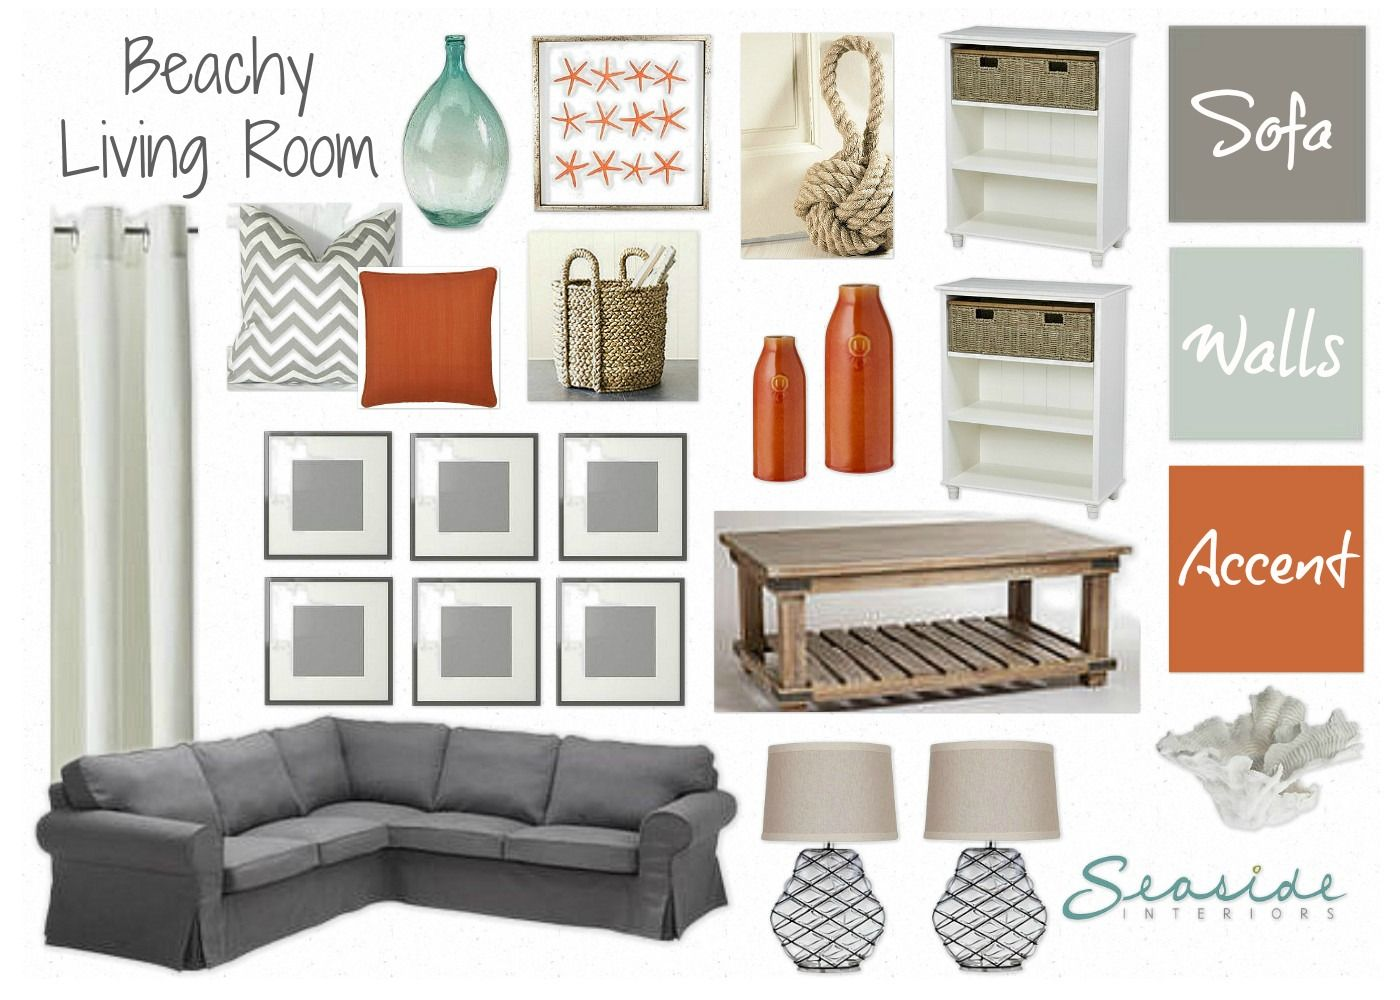 Seaside Interiors: Beachy Living Room With Grays And Orange! Part 89